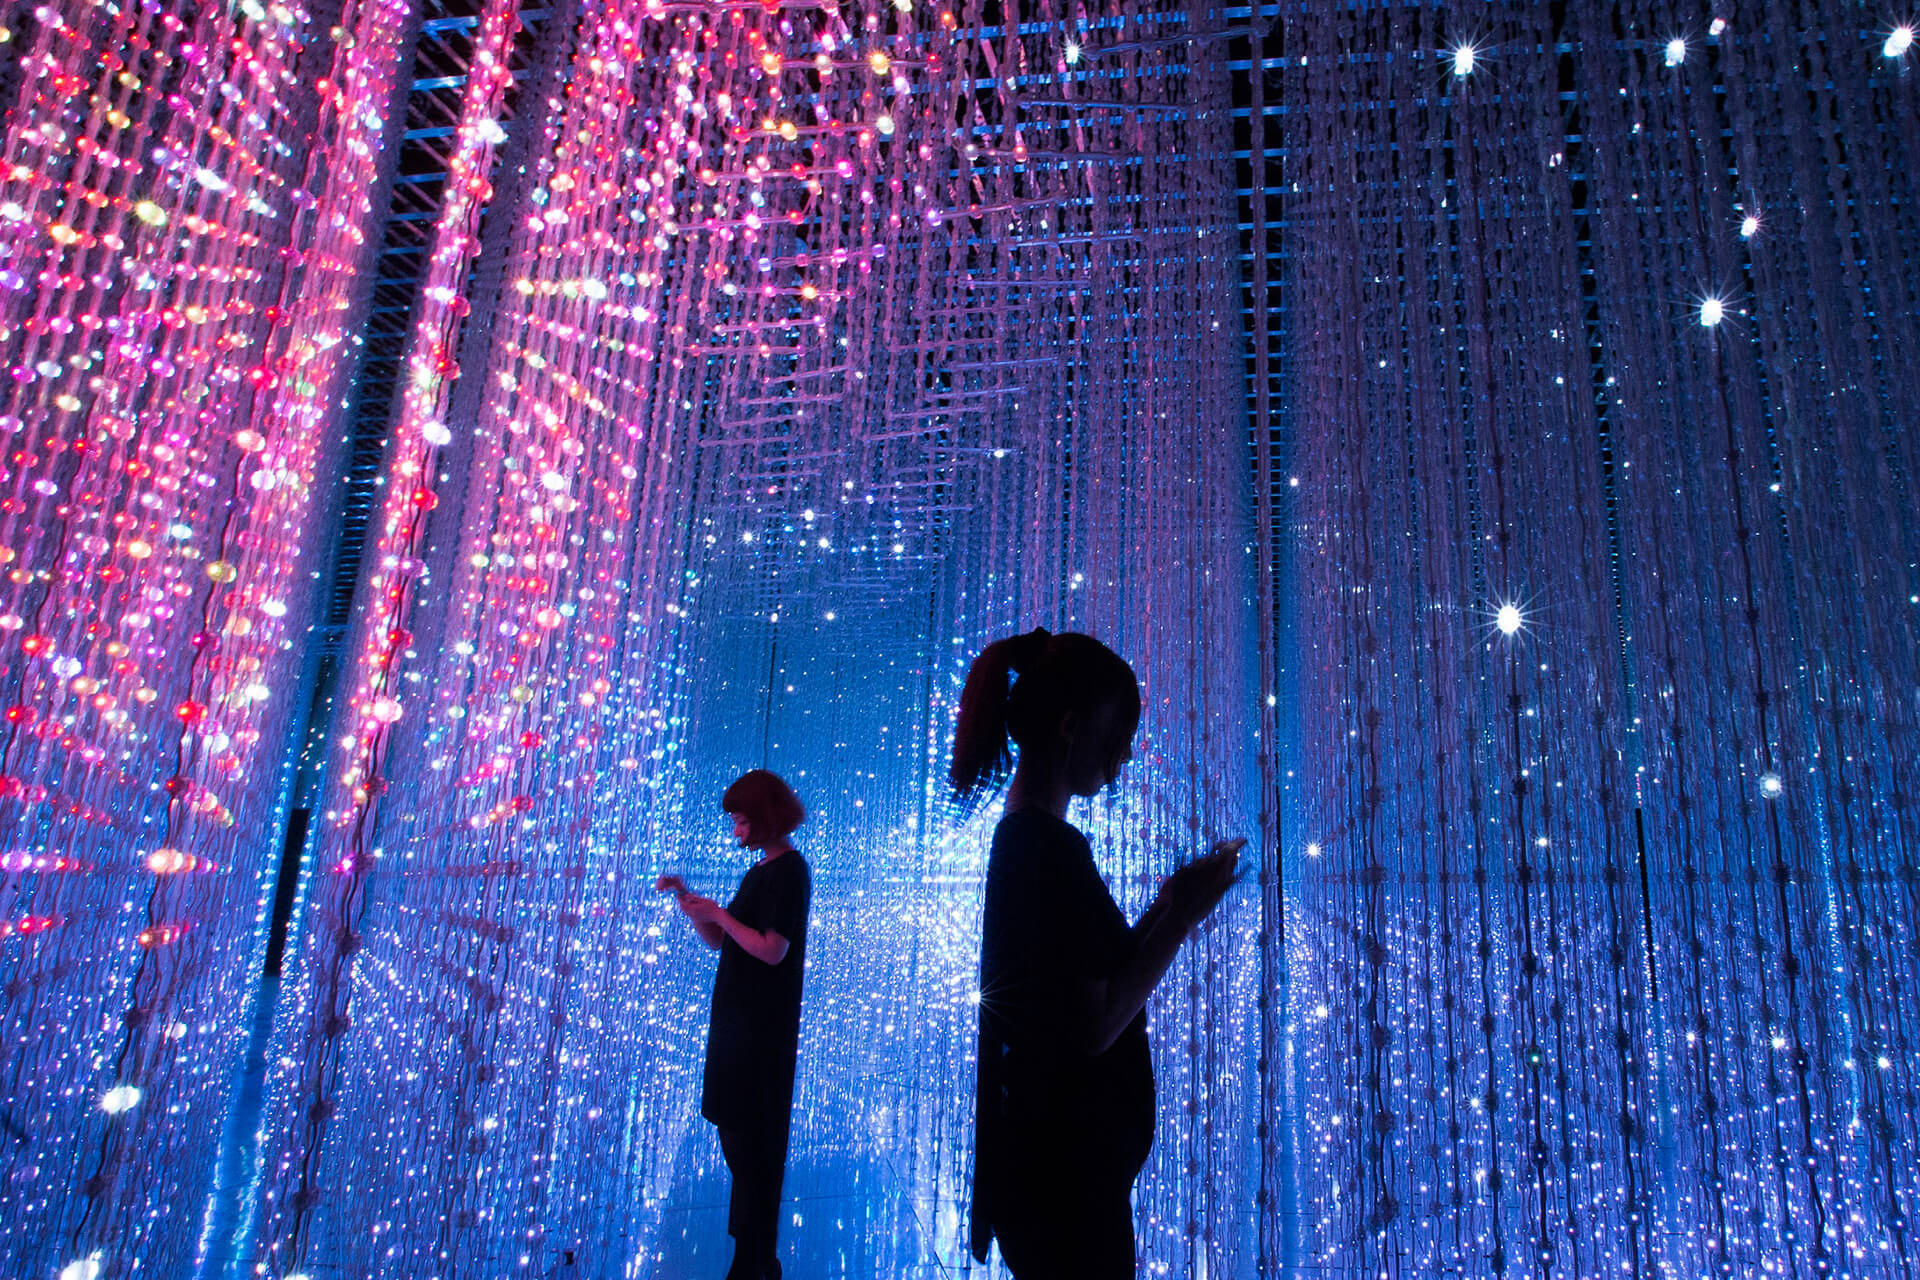 'Interactivity is an important element in the art that teamLab presents, encouraging viewers to engage | Future World by teamLab | STIRworld